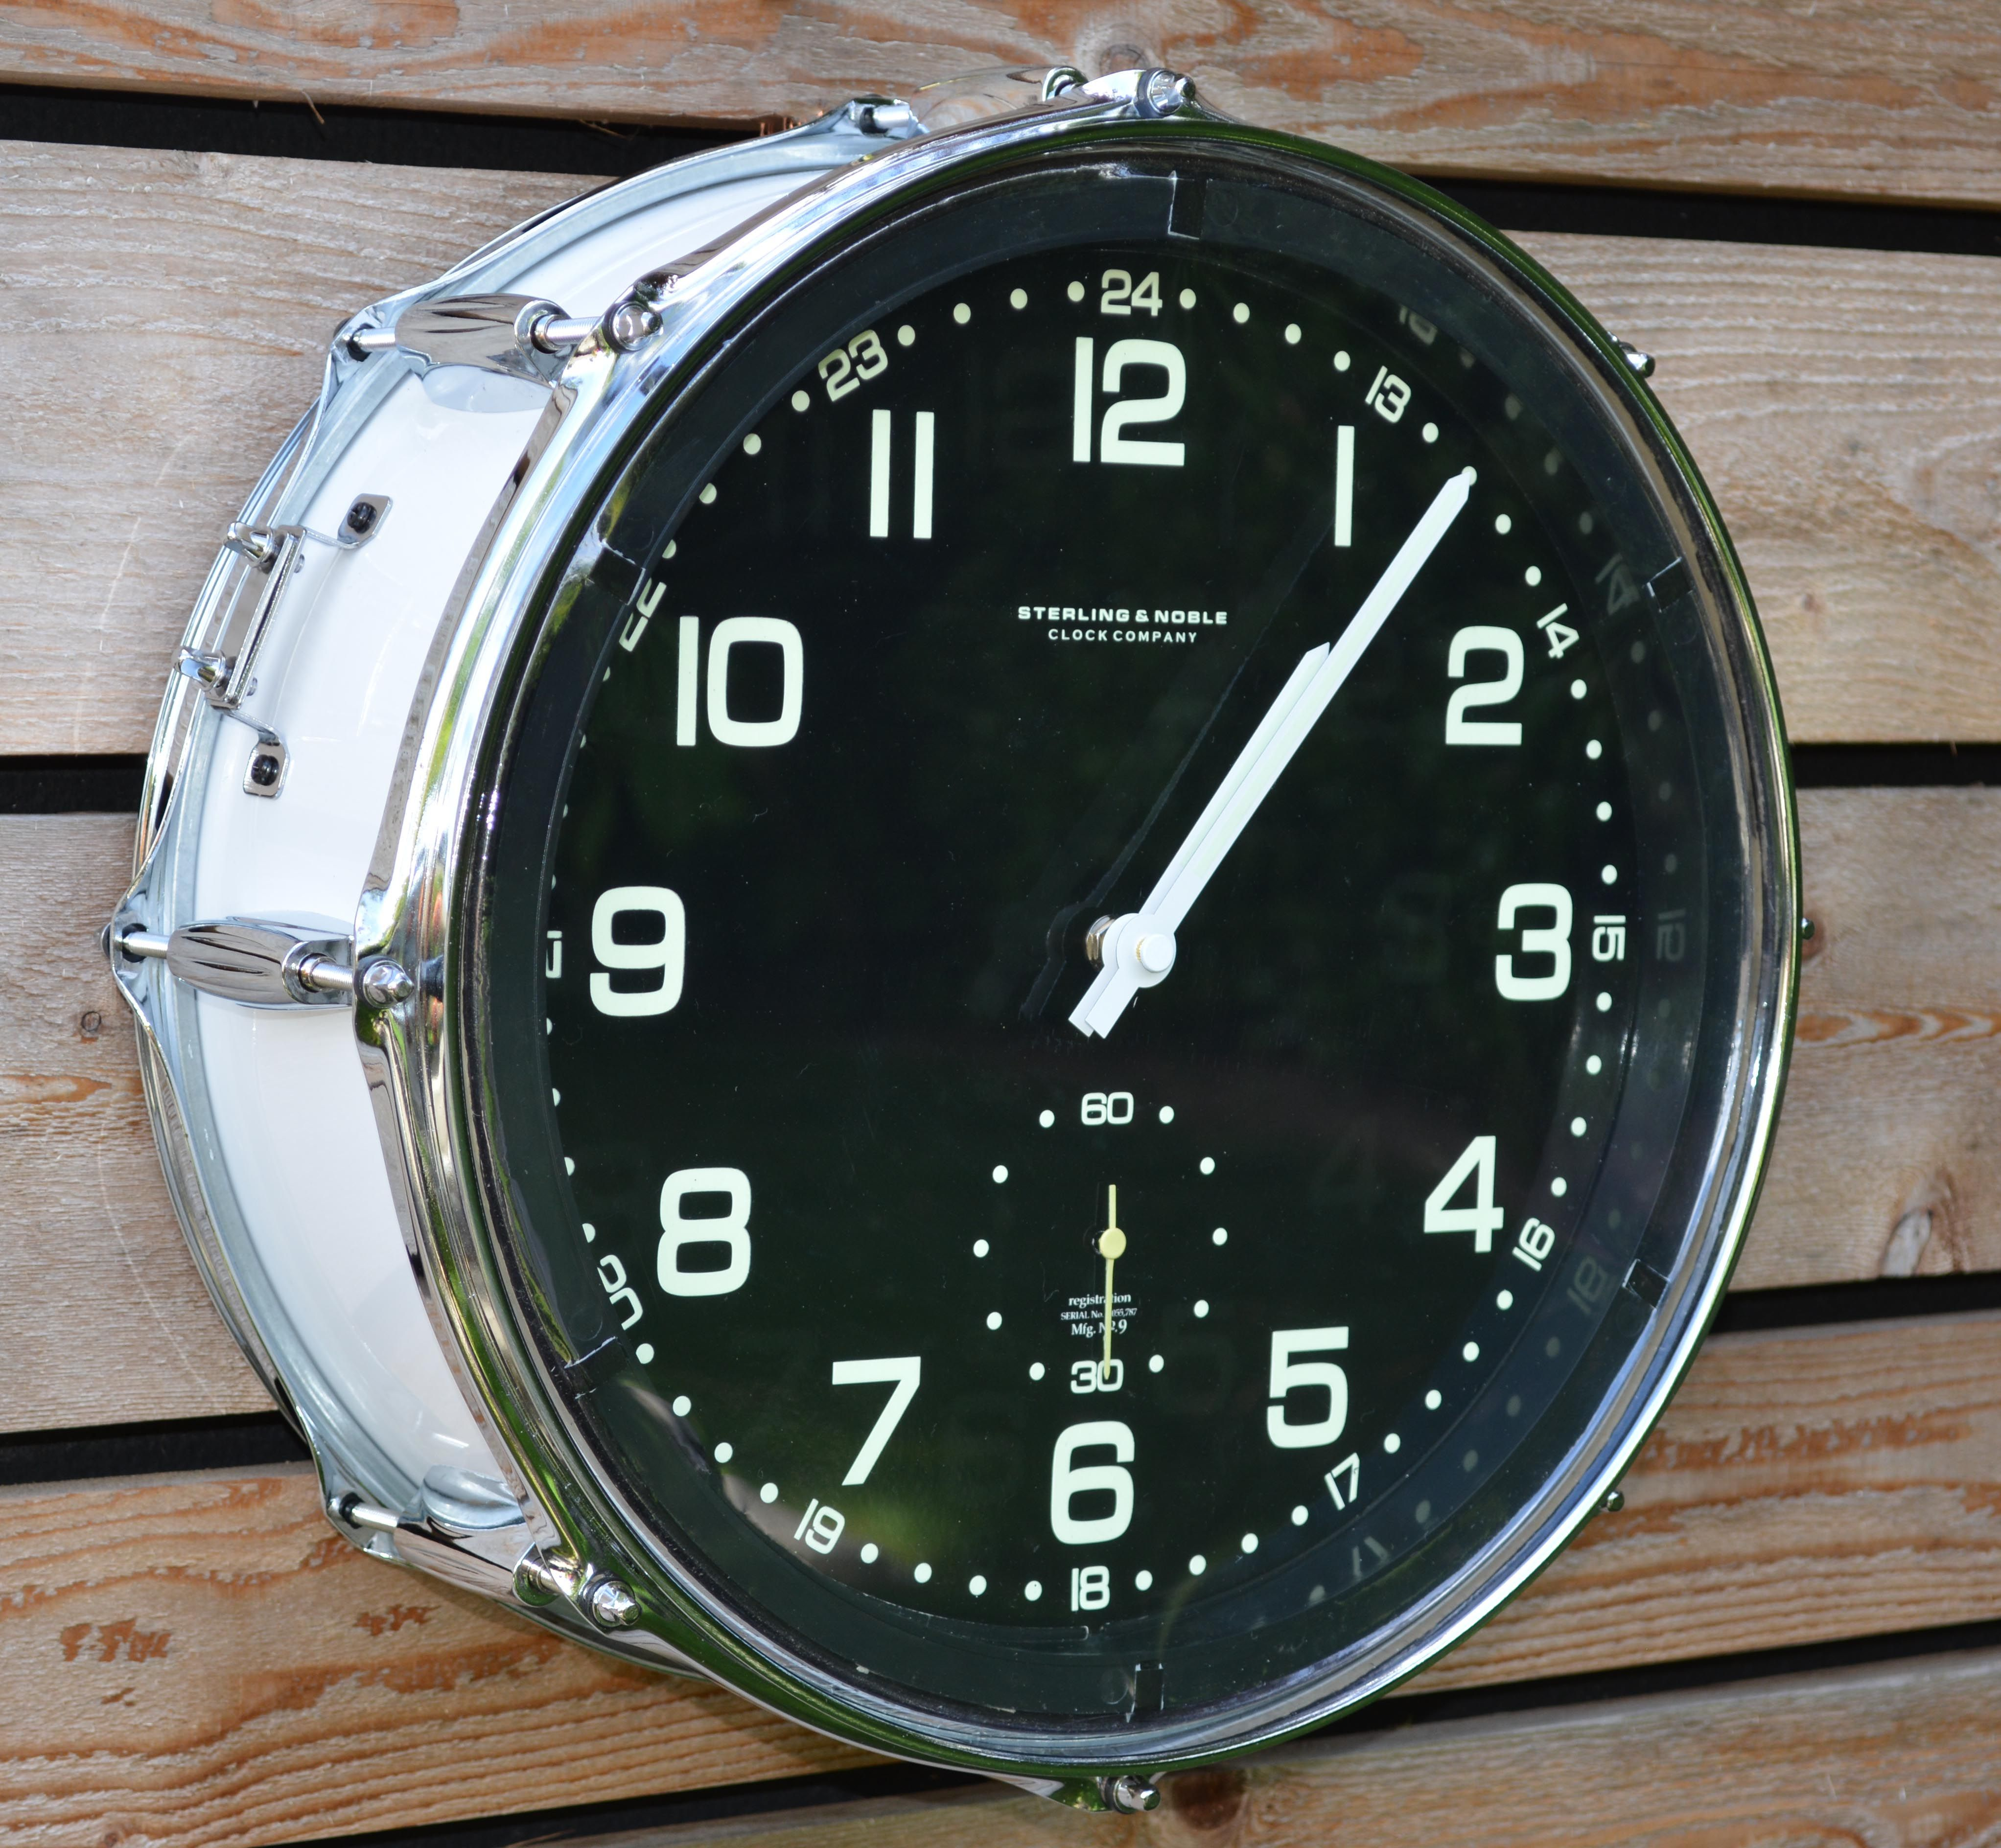 gretsch snare drum clock from timebeats on etsy music rooms pinterest gretsch and drums. Black Bedroom Furniture Sets. Home Design Ideas